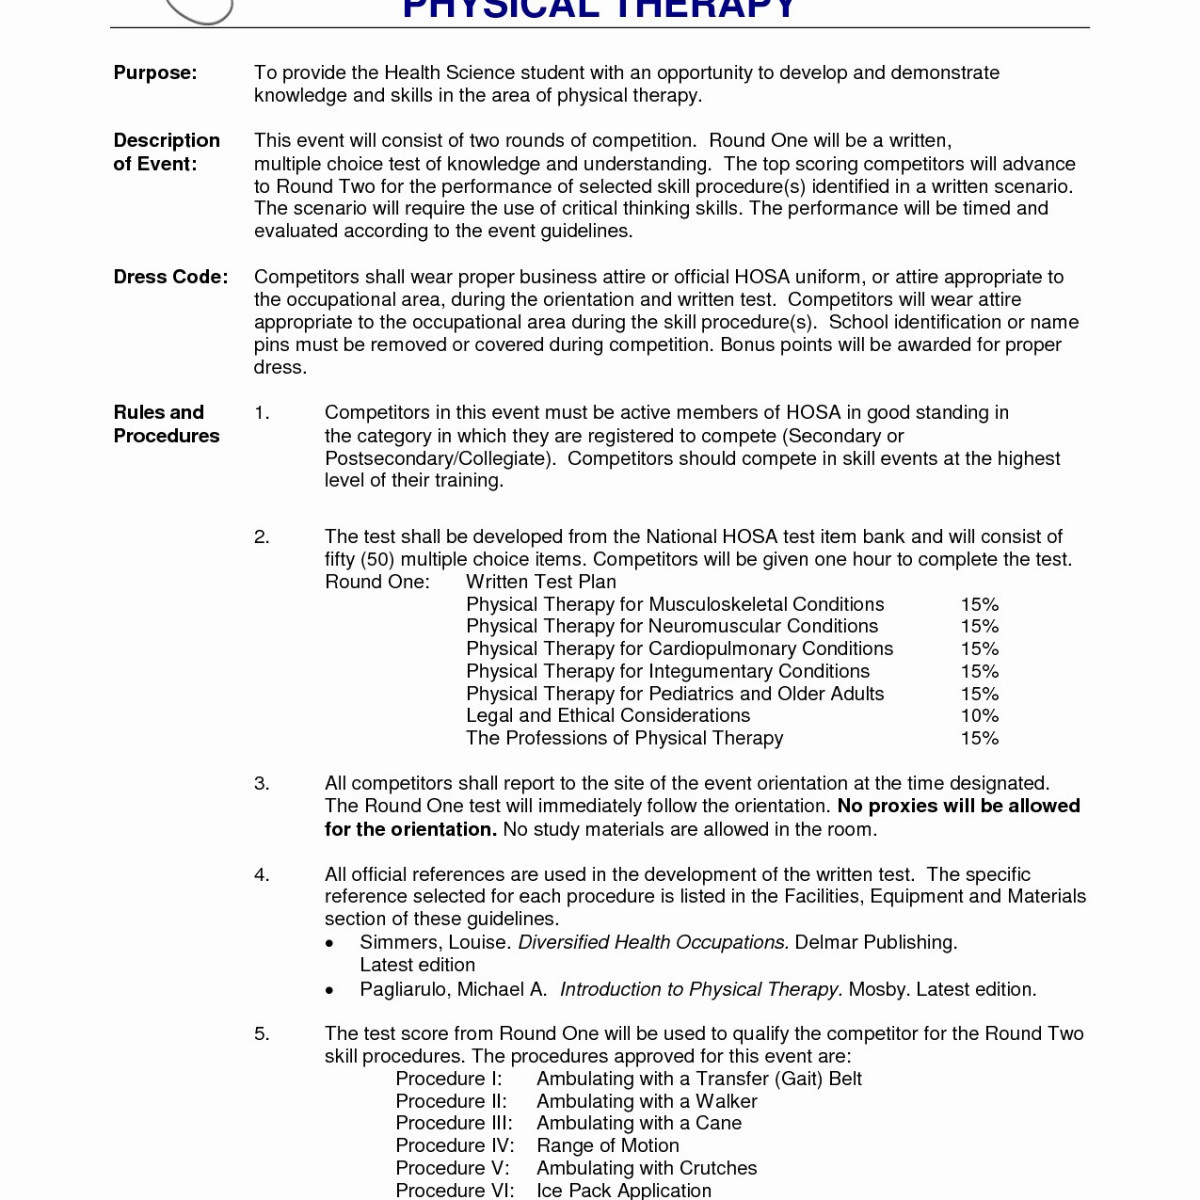 pta resume template example-Resume Examples for Physical therapist at Resume Sample Ideas from Sample Physical Therapy Resume source cheapjordanretros 13-o